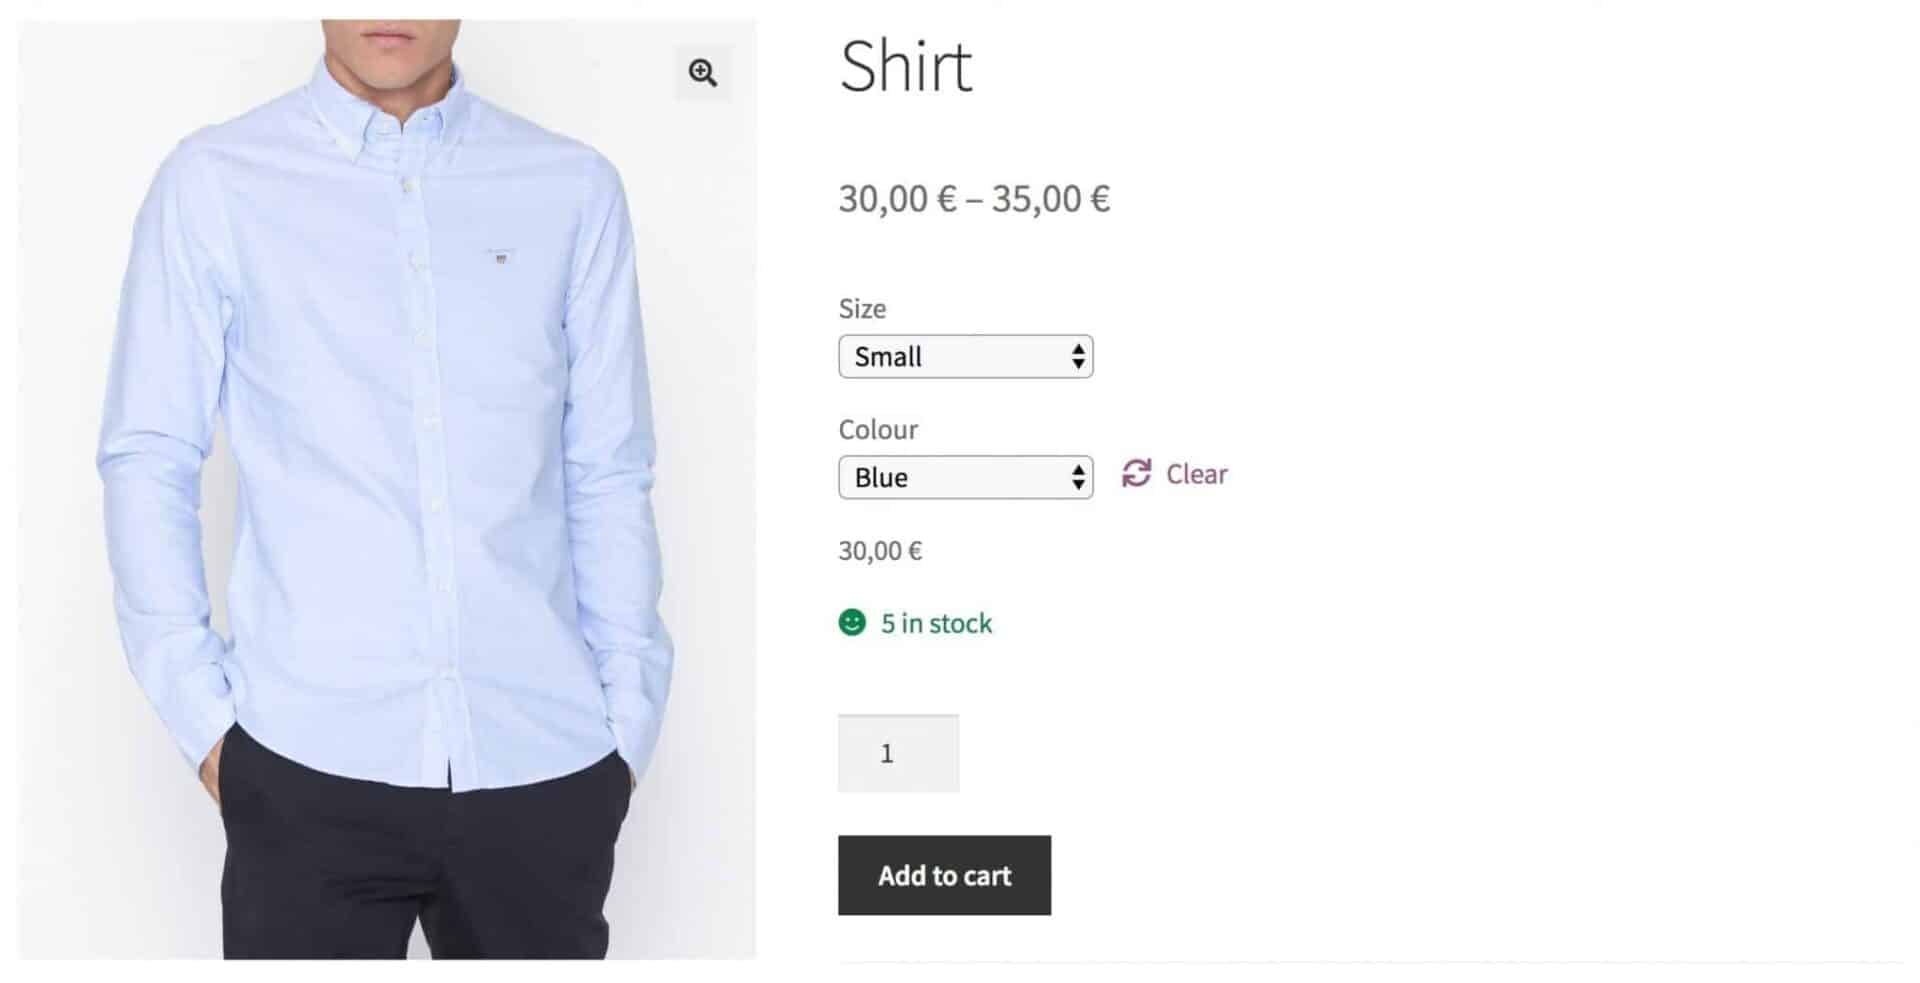 WooCommerce product with two attributes